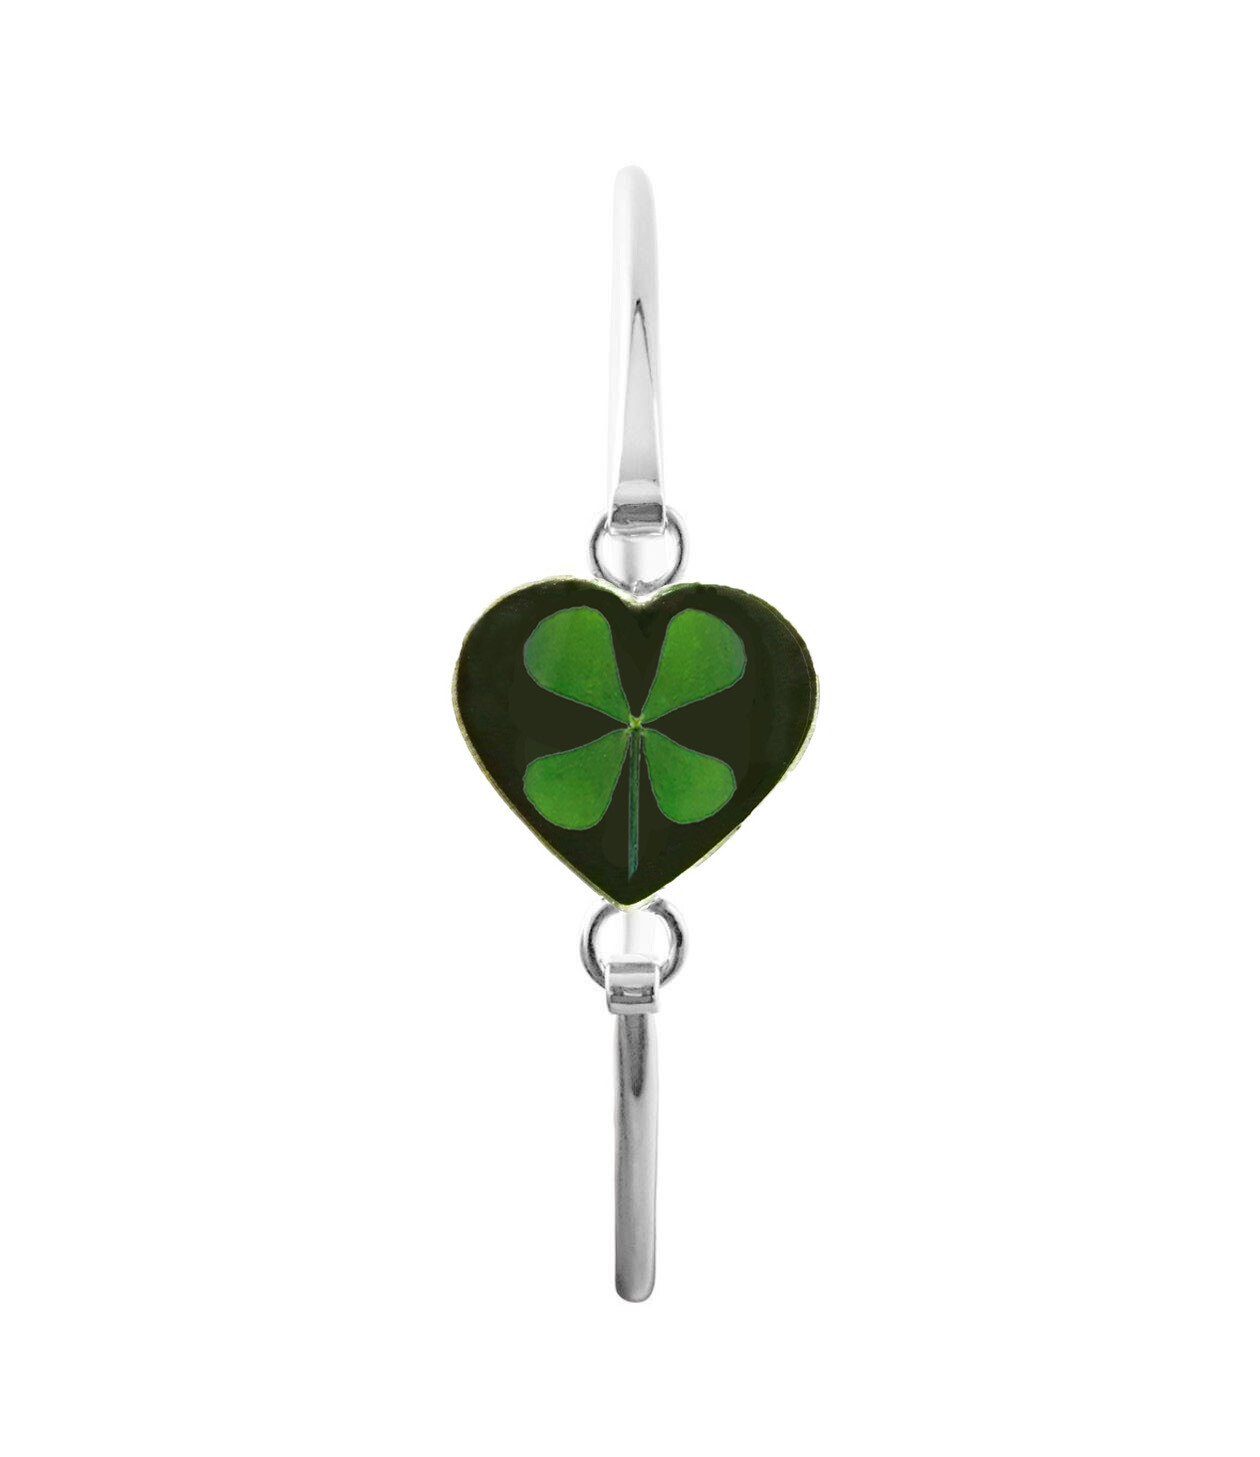 Four-Leaf Clover, Heart Bracelet, Black Background